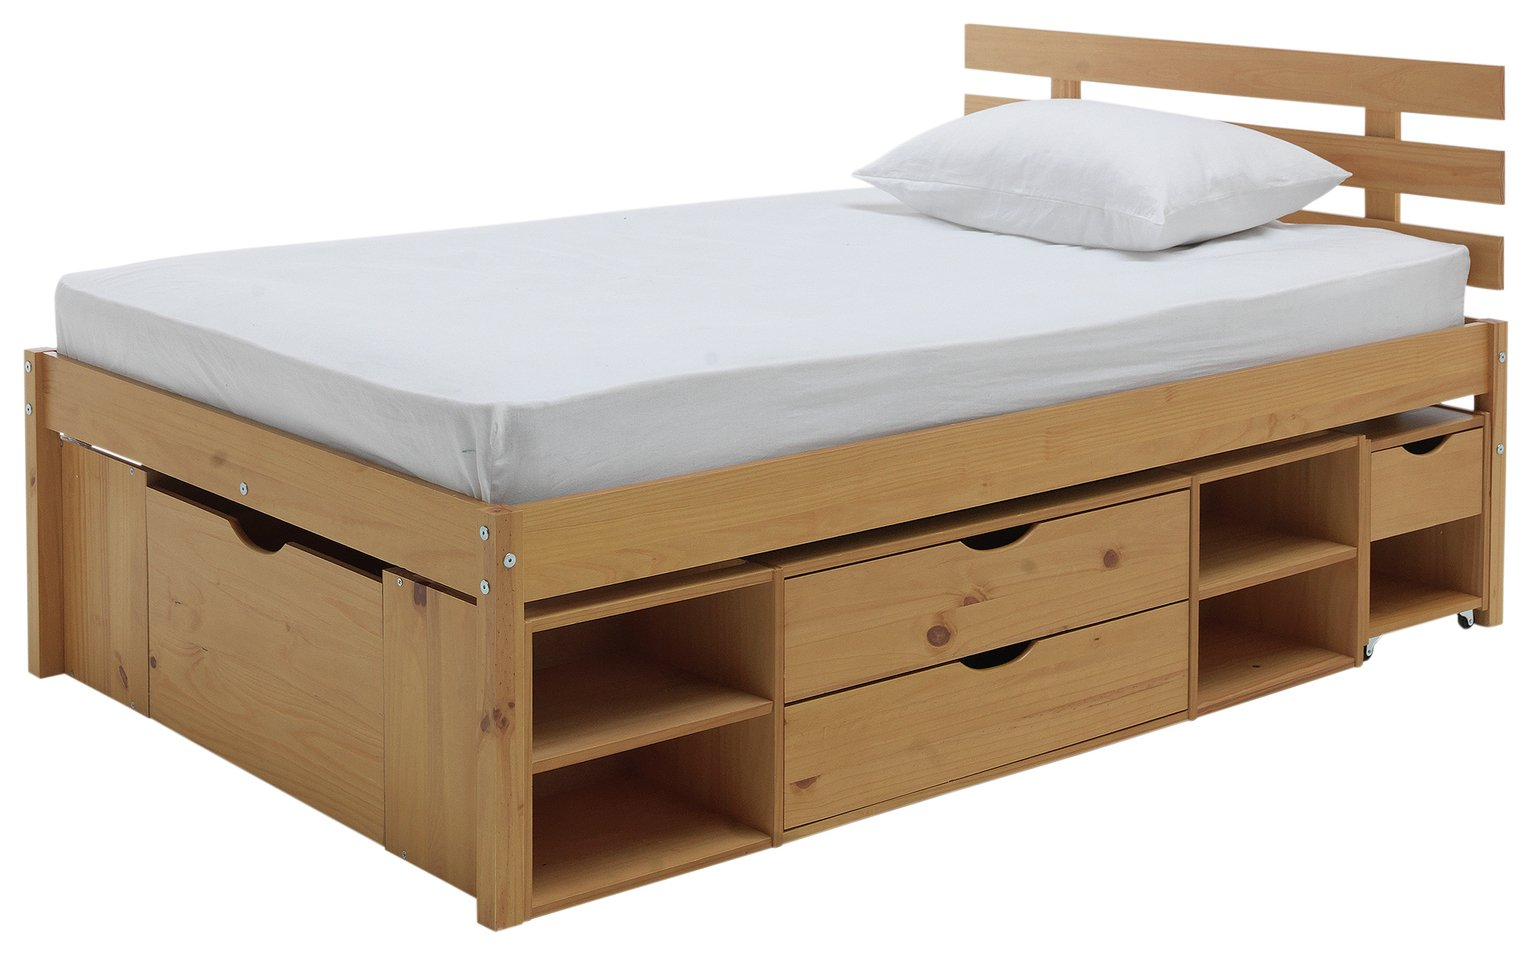 Superbe Buy Argos Home Ultimate Storage II Double Bed Frame | Bed Frames | Argos